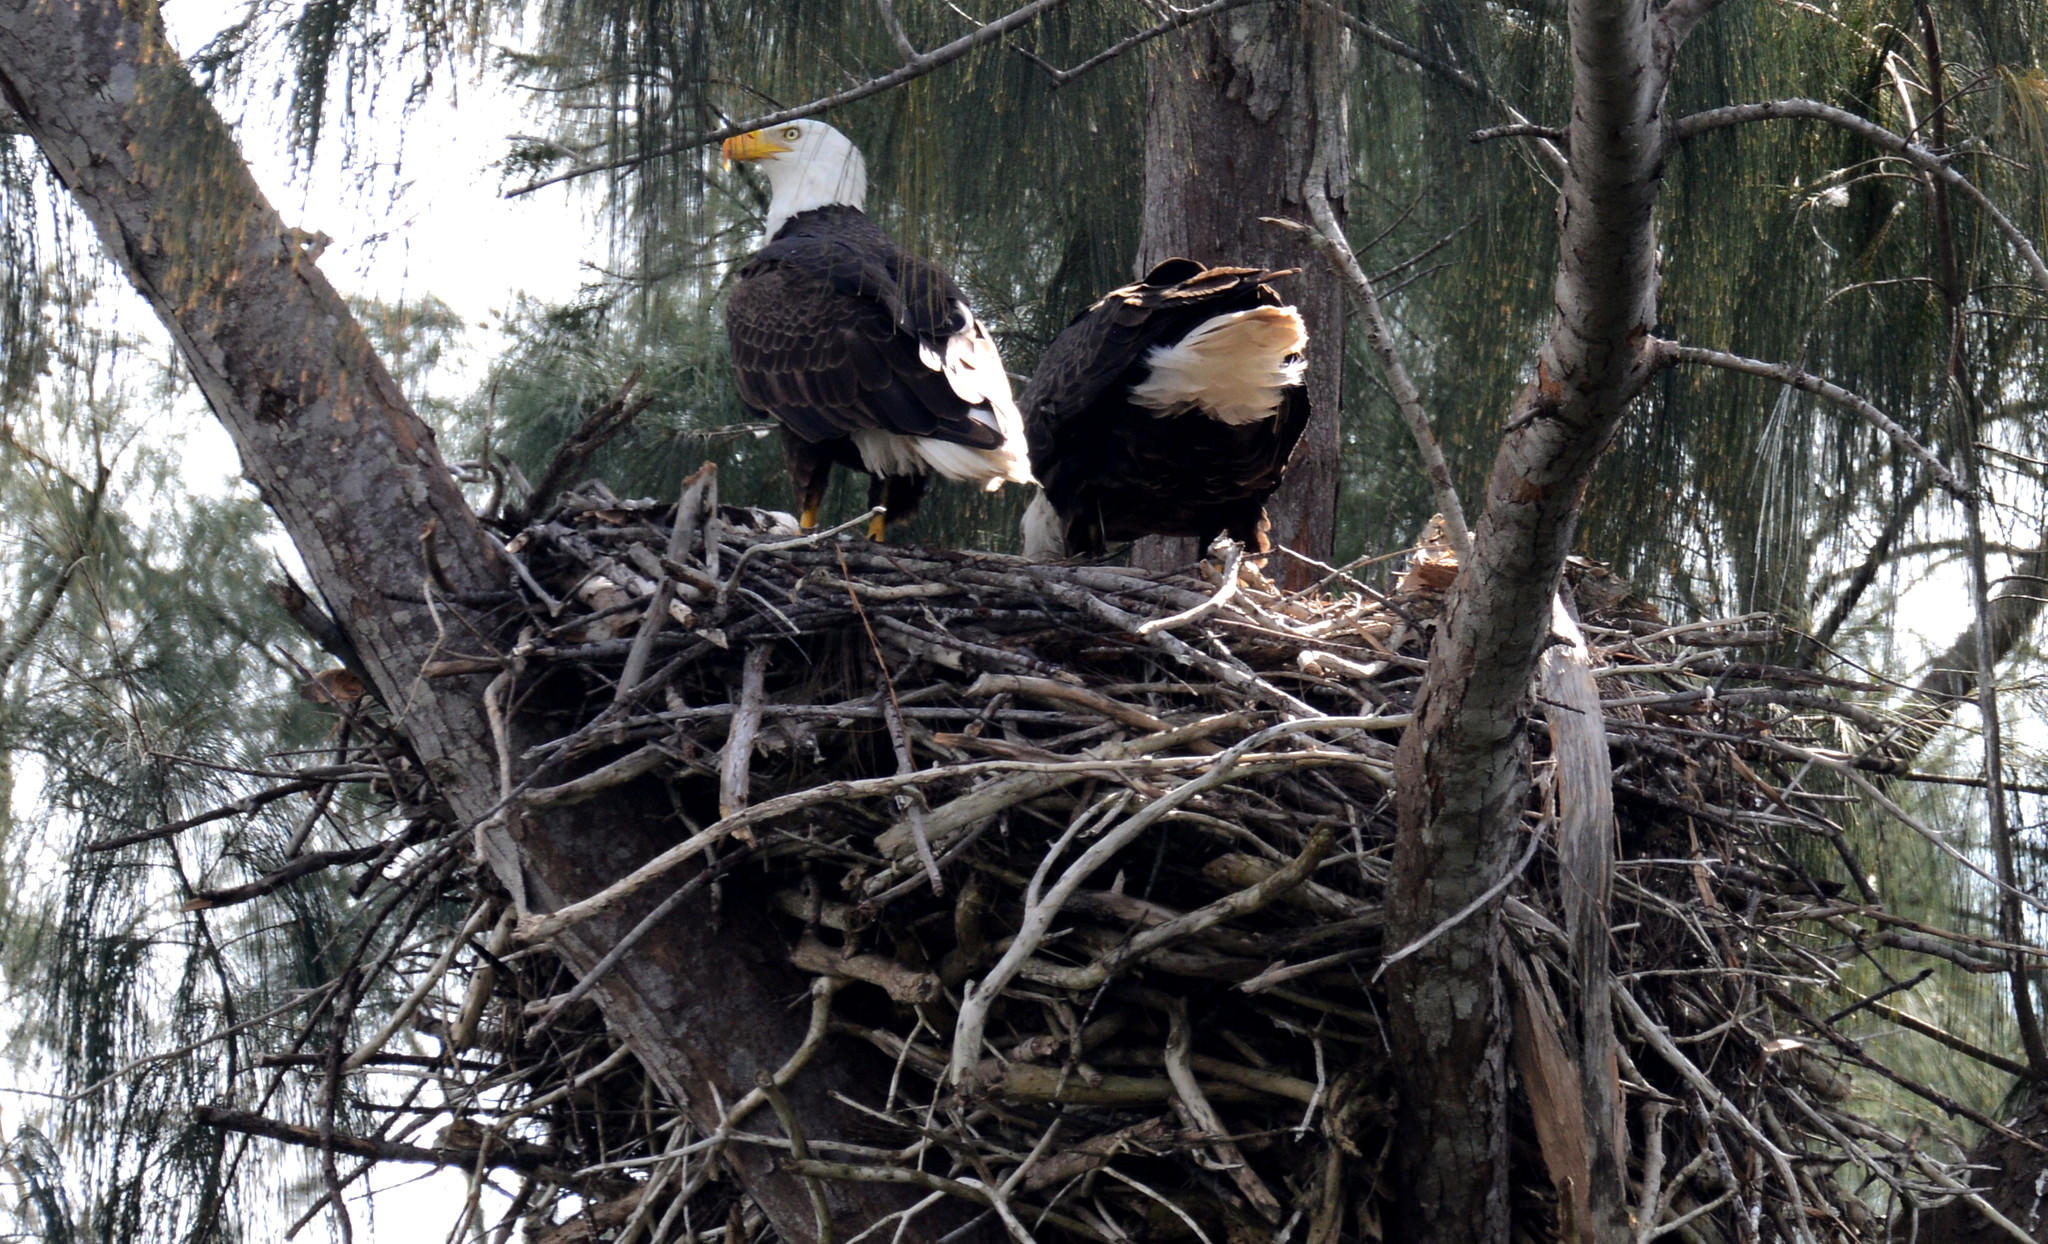 A (left) female and (right) male bald eagles stand on the edge of their nest in Pembroke Pines, location of the only known nest in Broward County, where it appears chicks have just hatched.